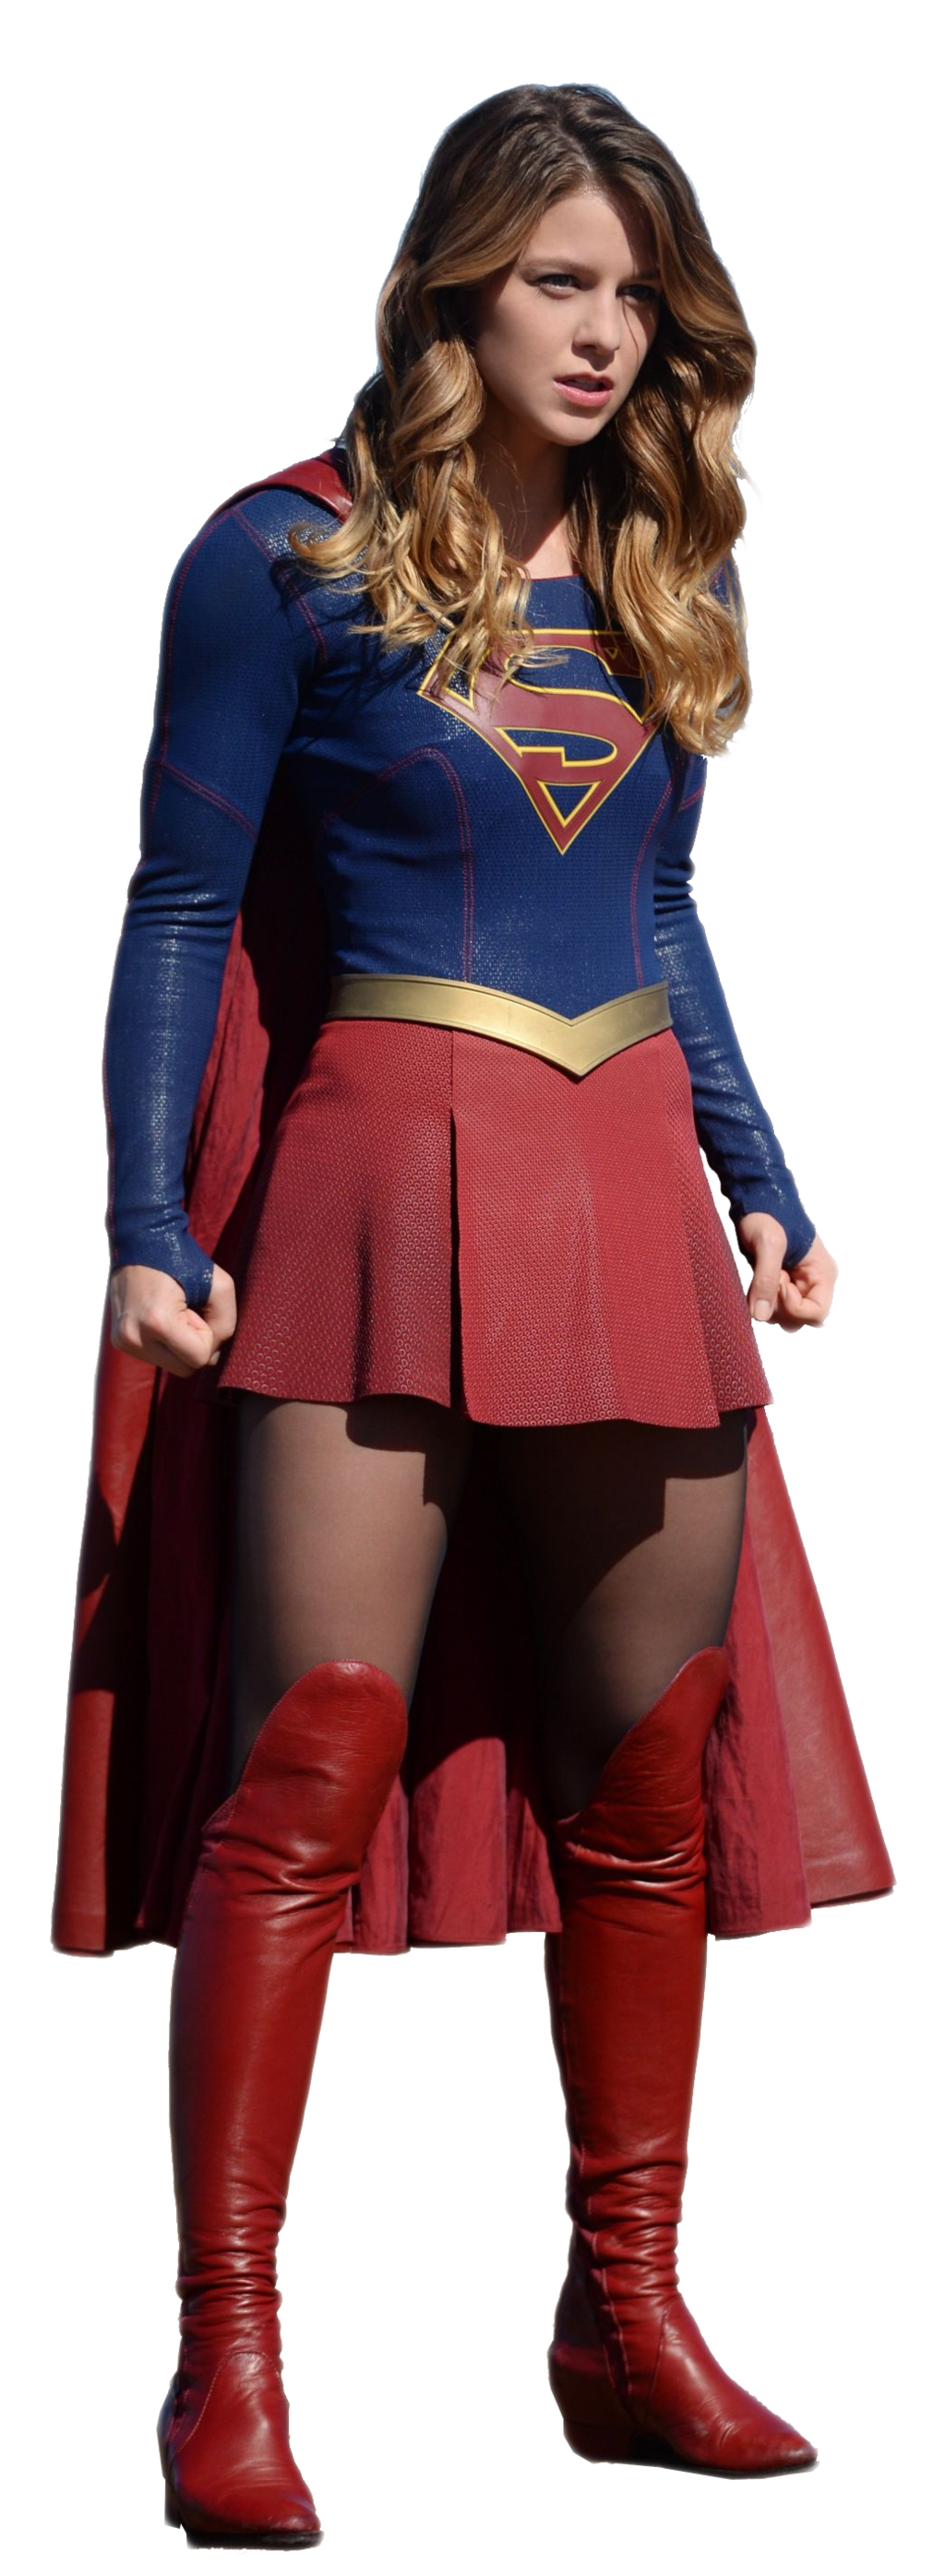 Buffy2ville 22 0 Supergirl PNG by Buffy2ville - Supergirl PNG - Supergirl HD PNG